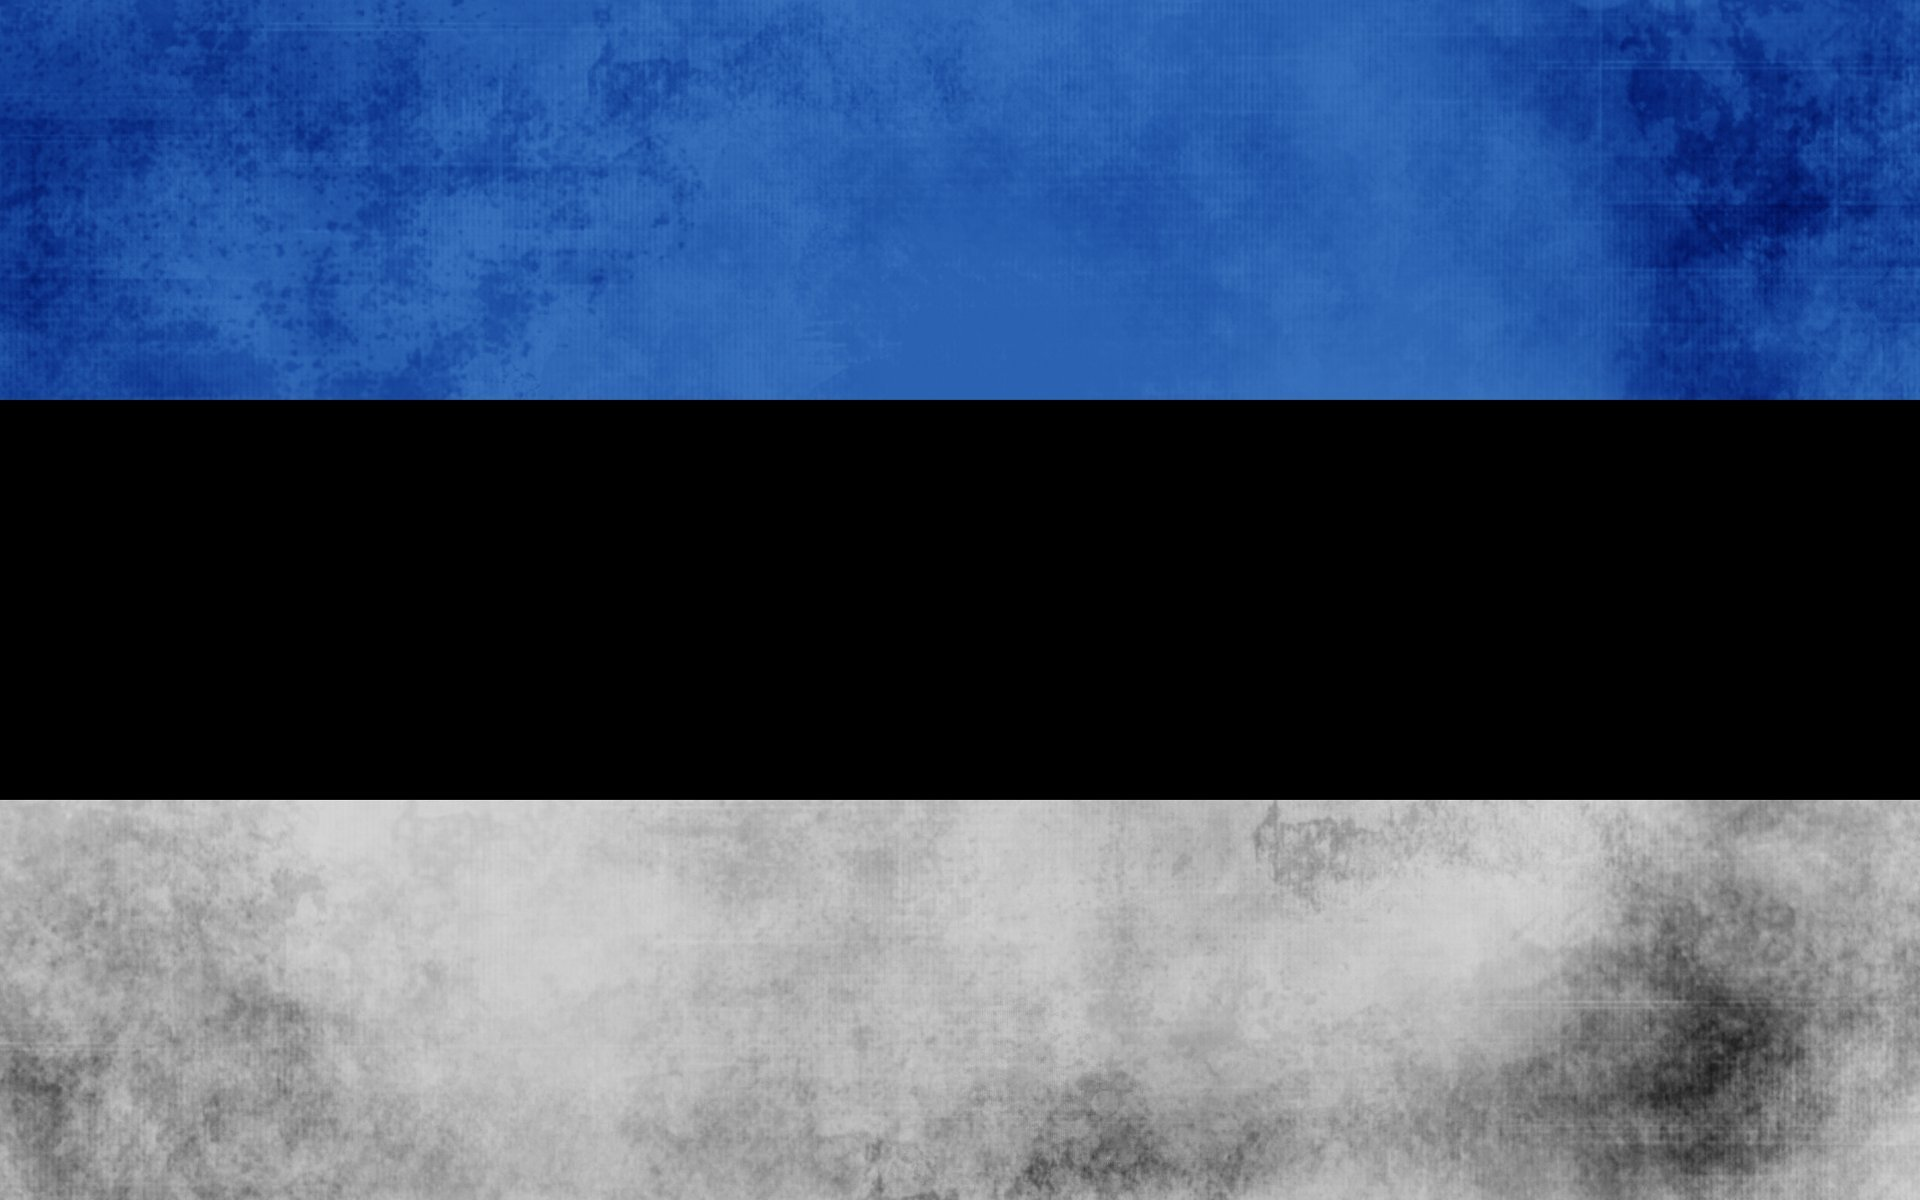 What flag is black with a horizontal blue stripe.